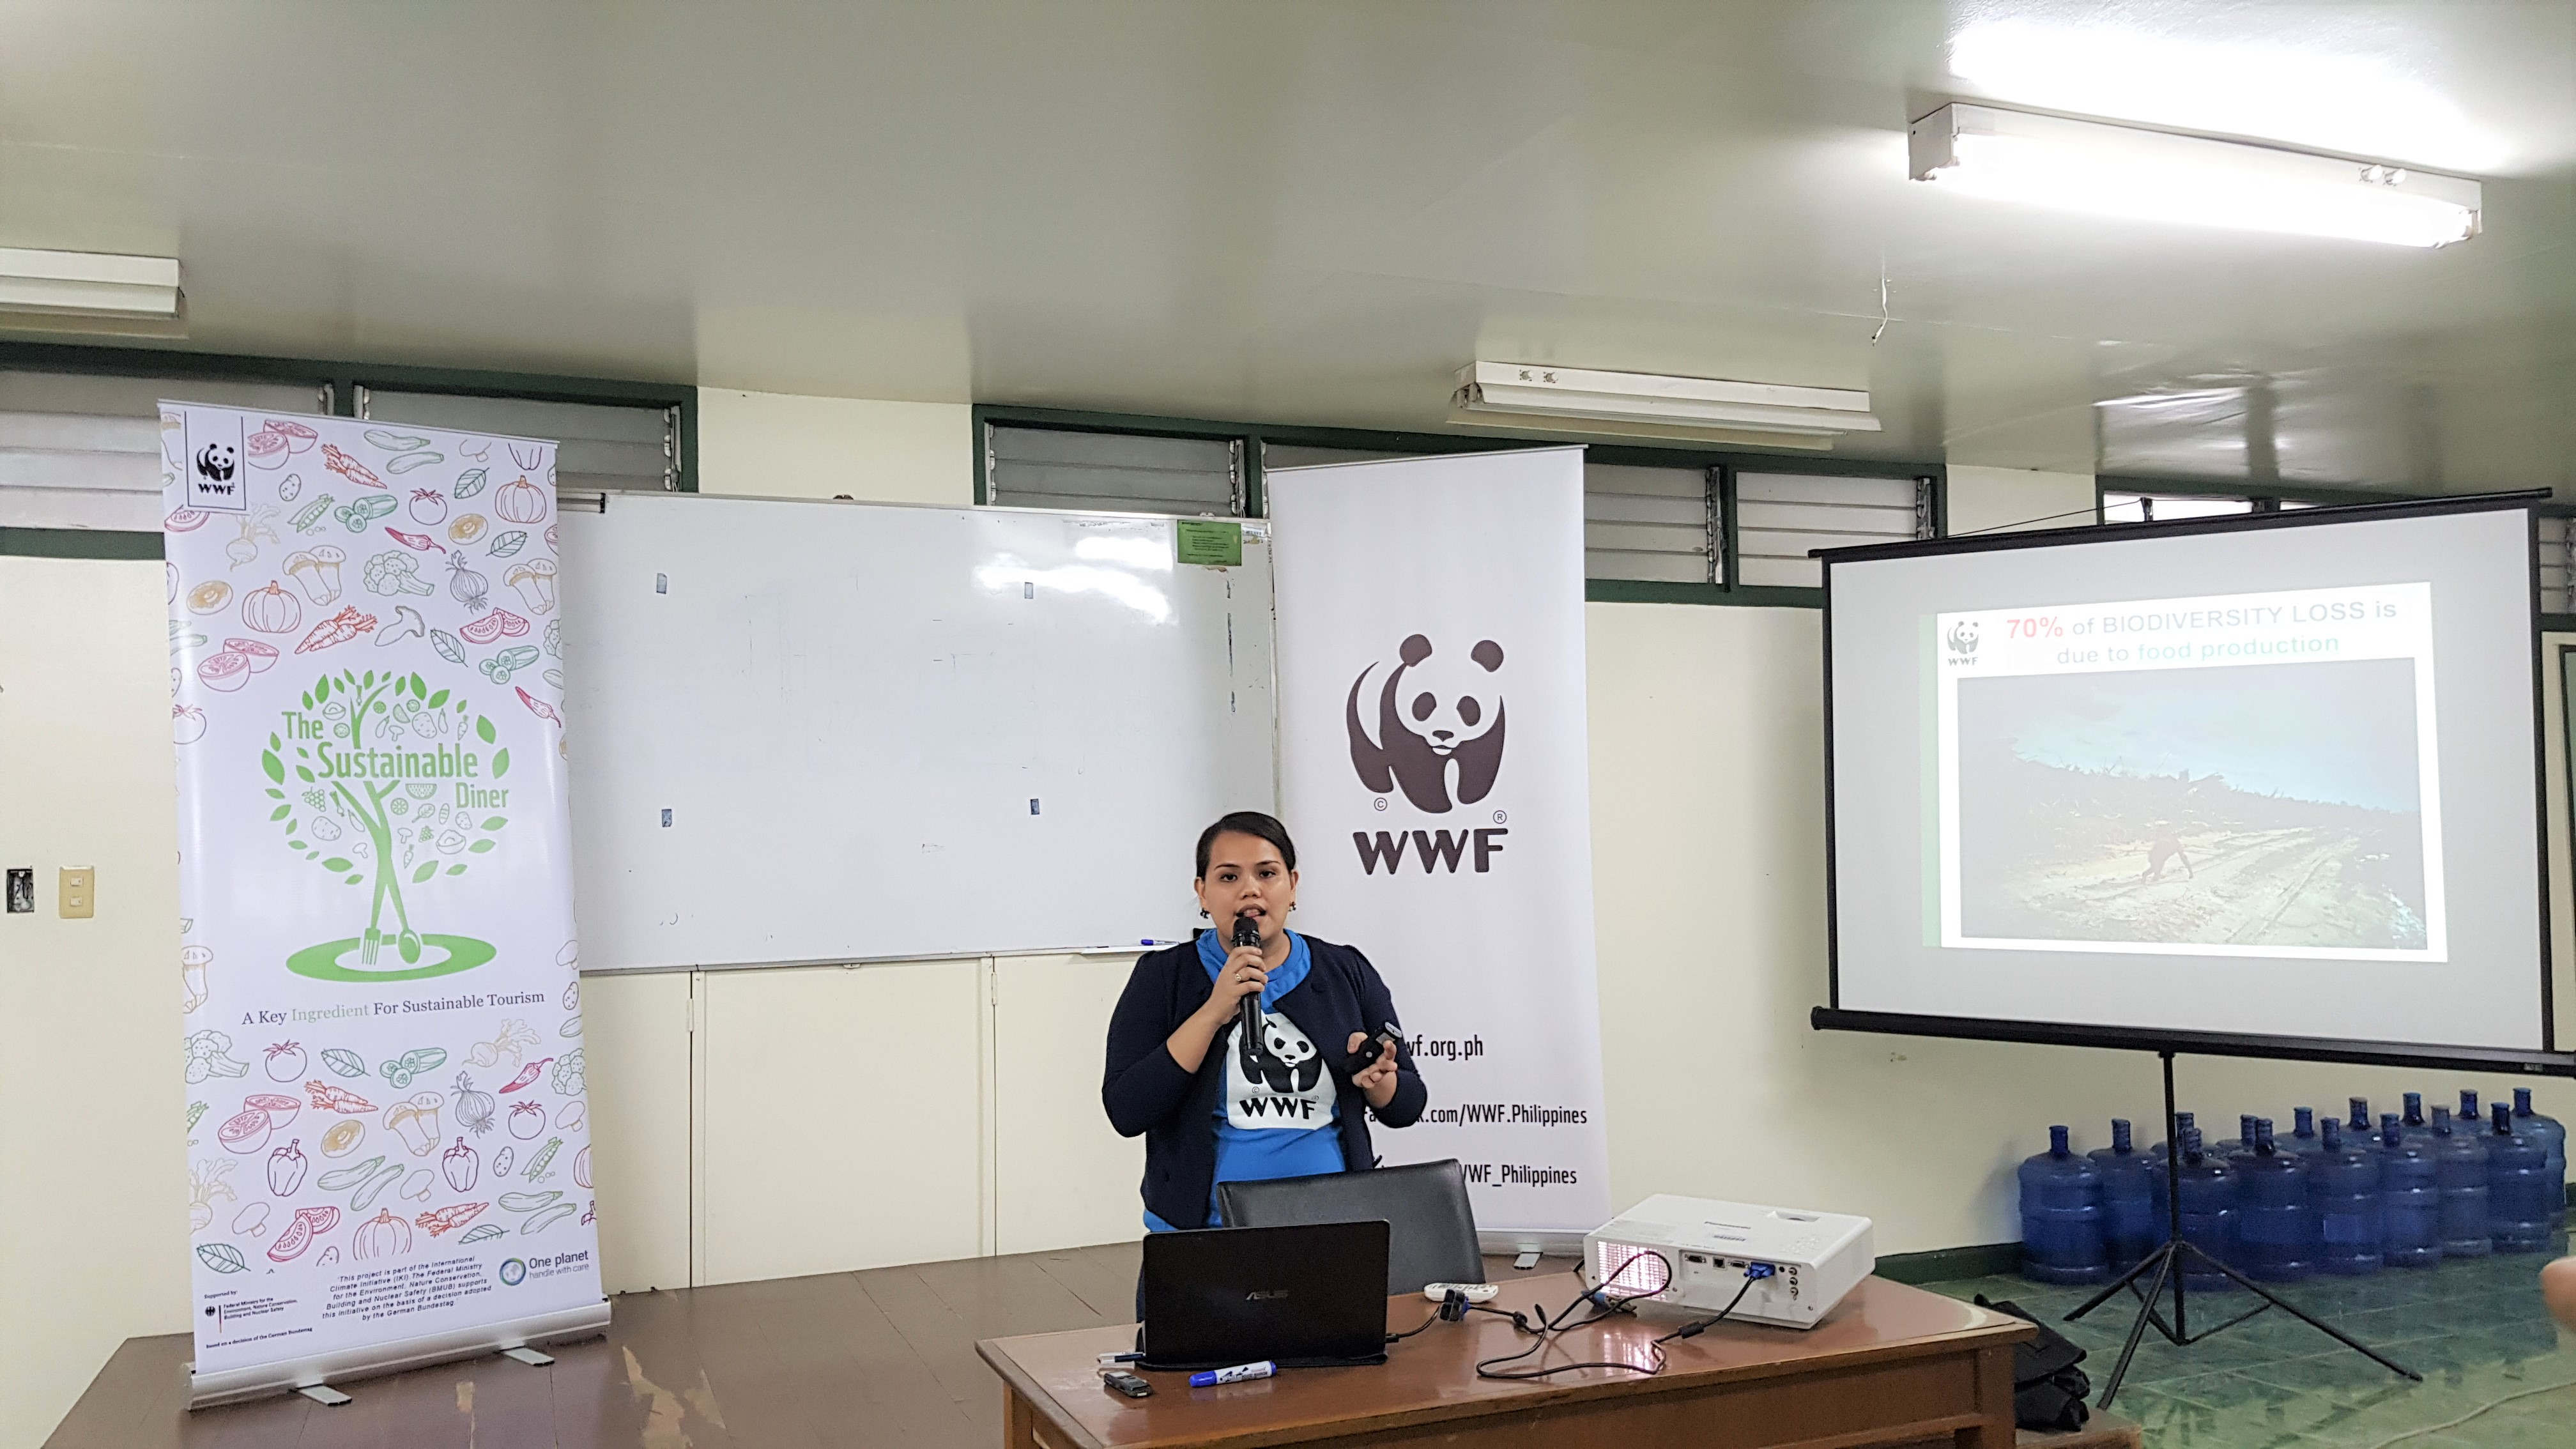 WWF-Philippines | The Sustainable Diner at the UP Club for